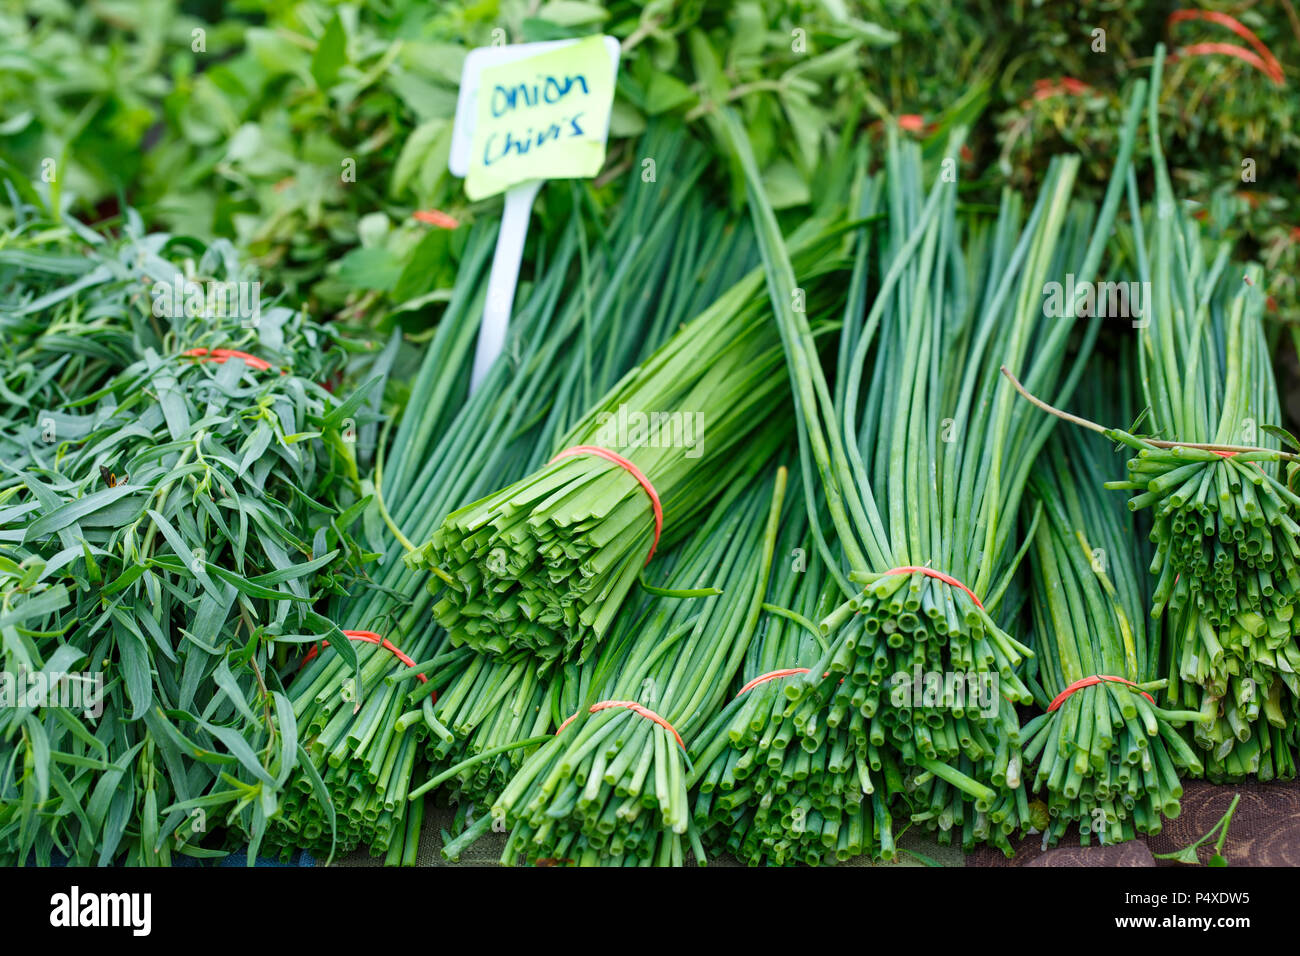 Chives and Other Herbs at an Outdoor Farmer's Market - Stock Image